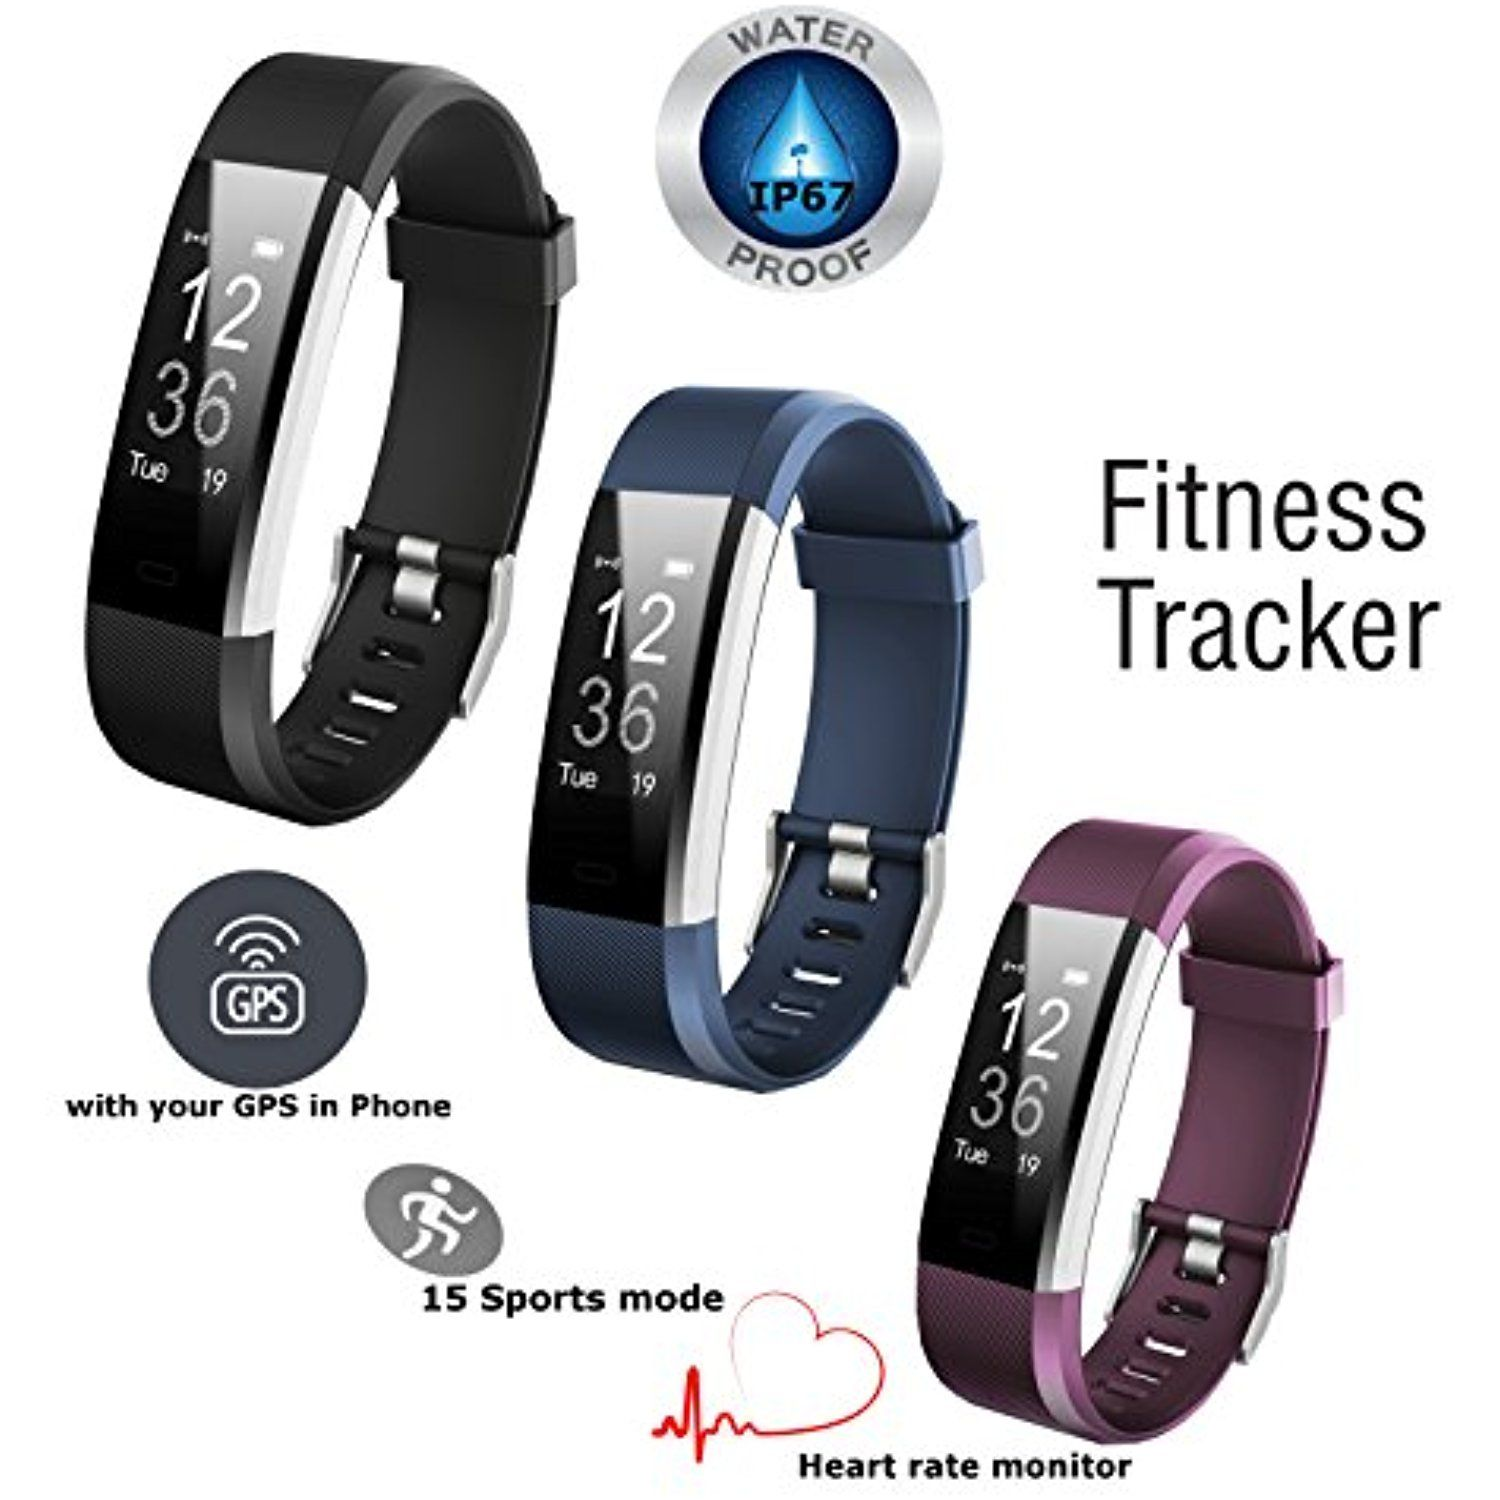 Fitness Tracker Heart Rate Monitor – Bluetooth Connect